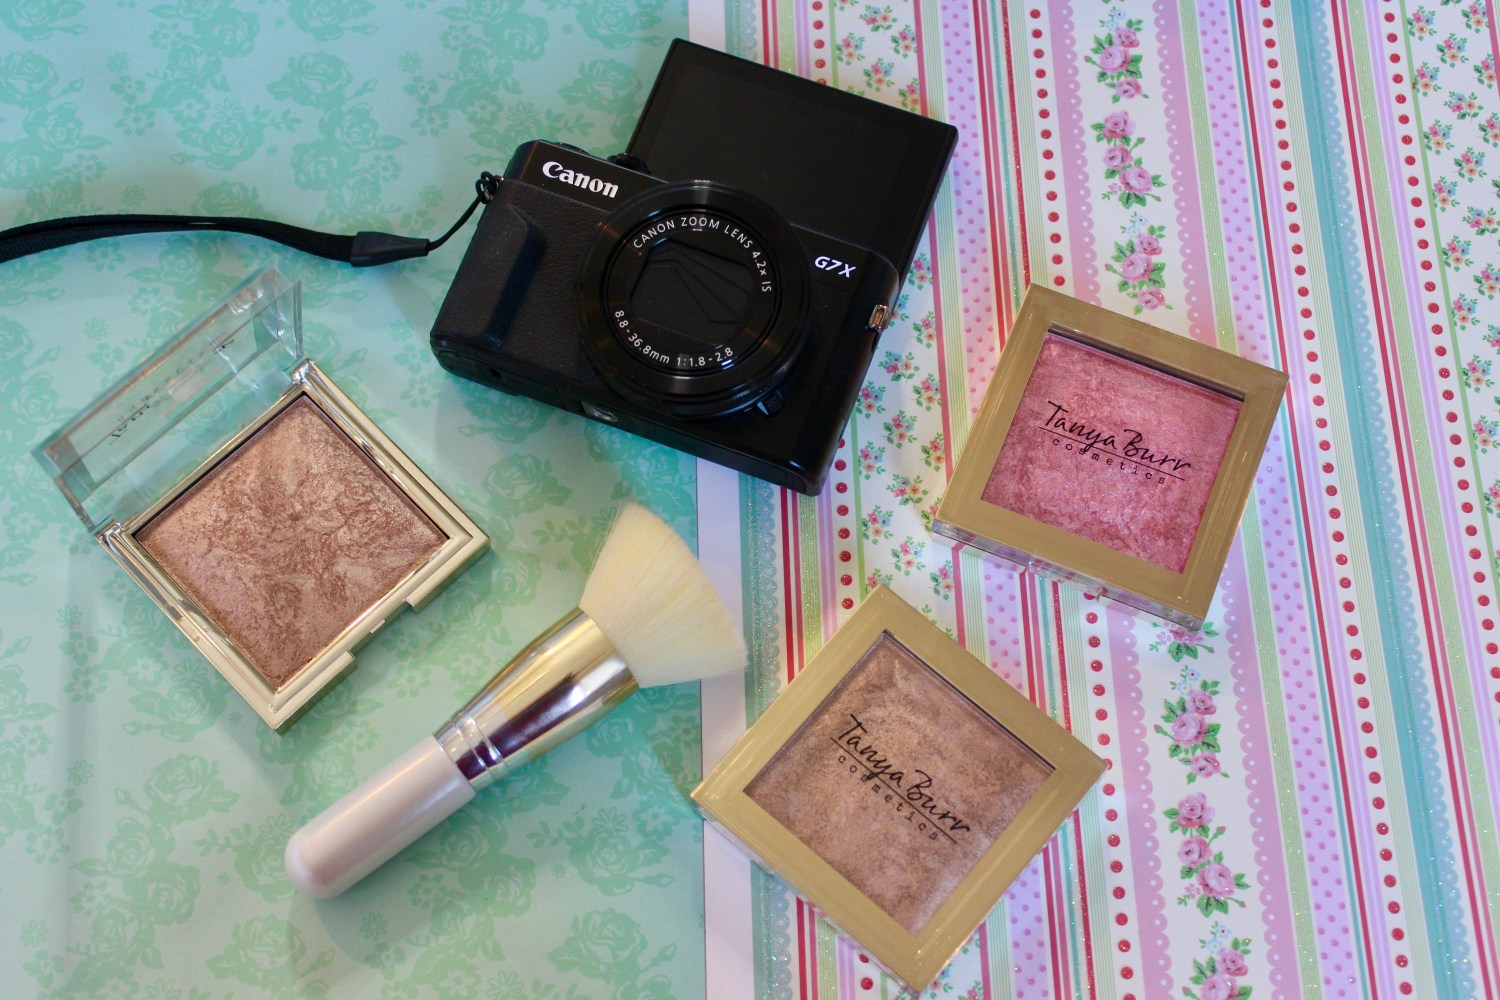 Tanya Burr Cosmetics Illuminating Powders